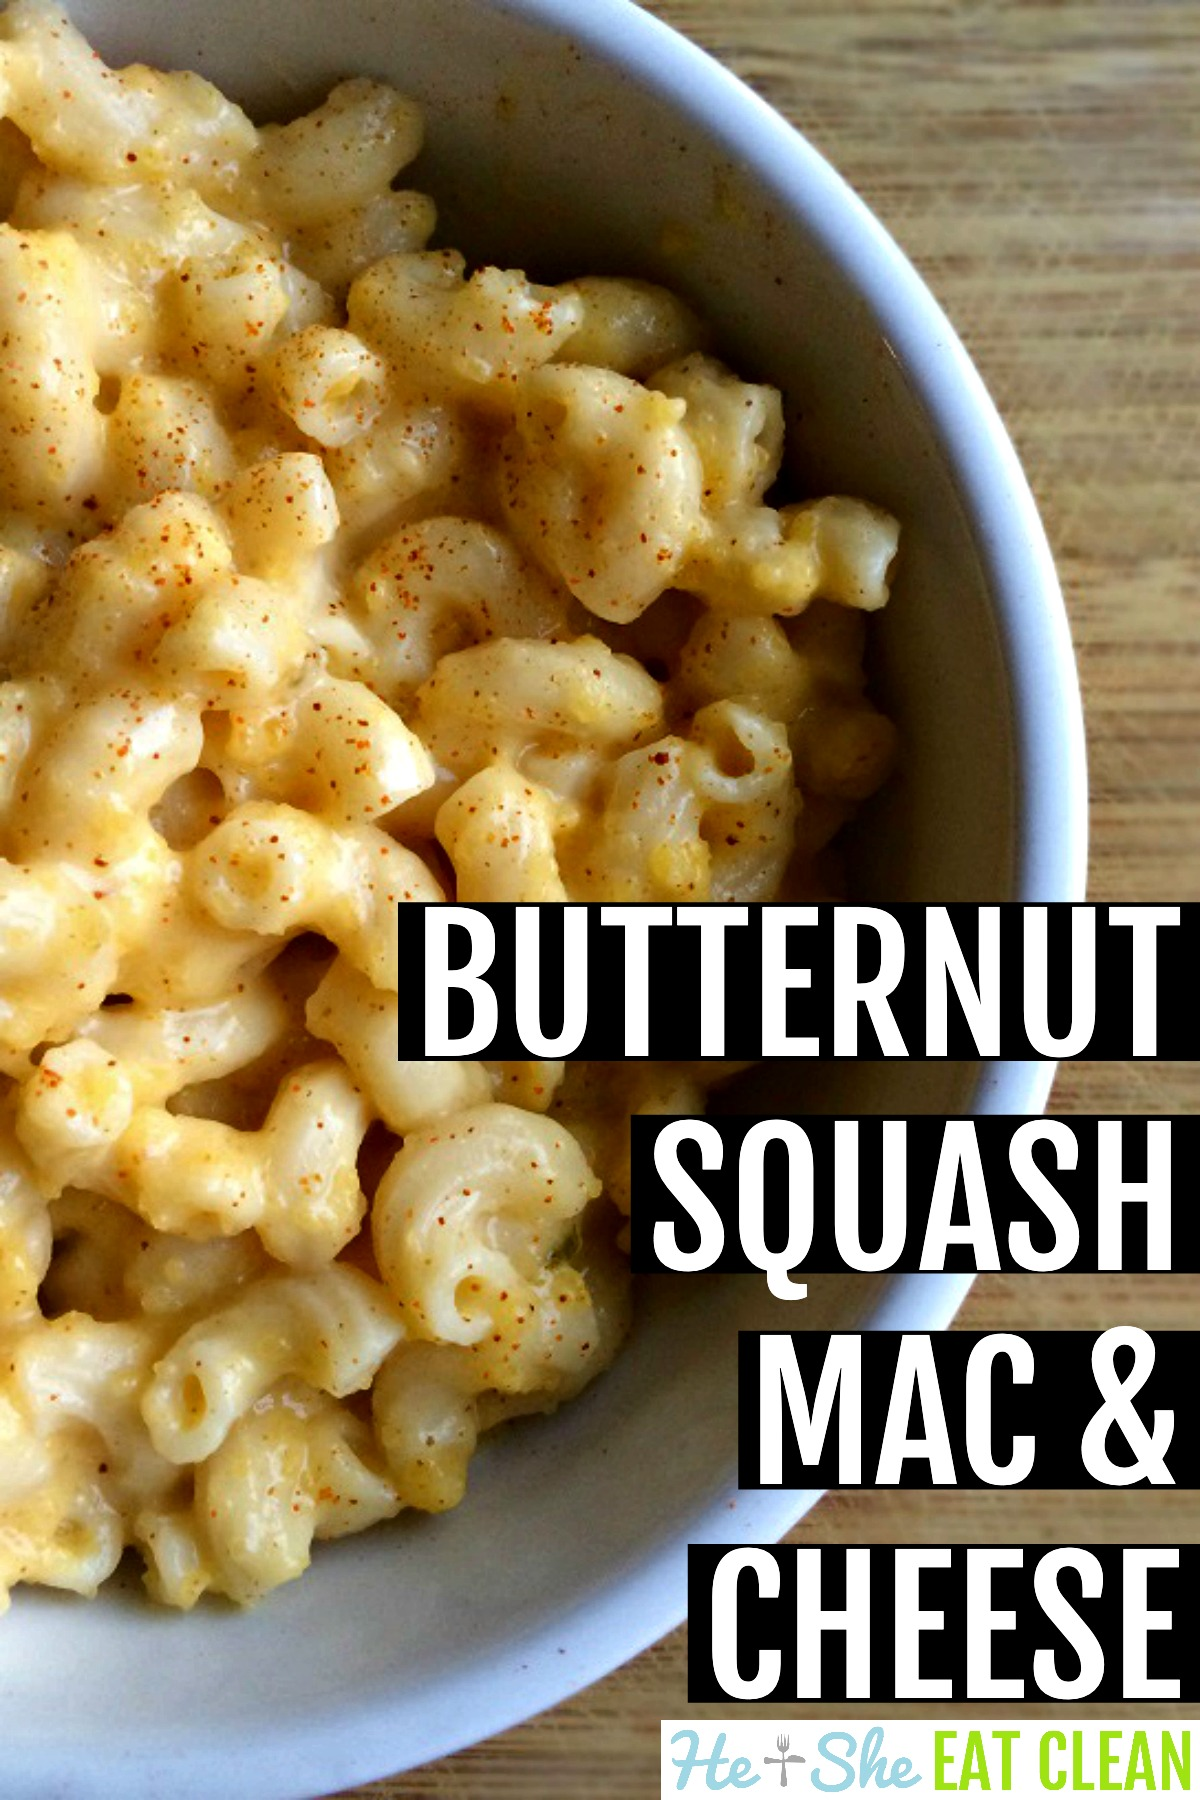 white bowl full of elbow pasta with butternut squash mac & cheese